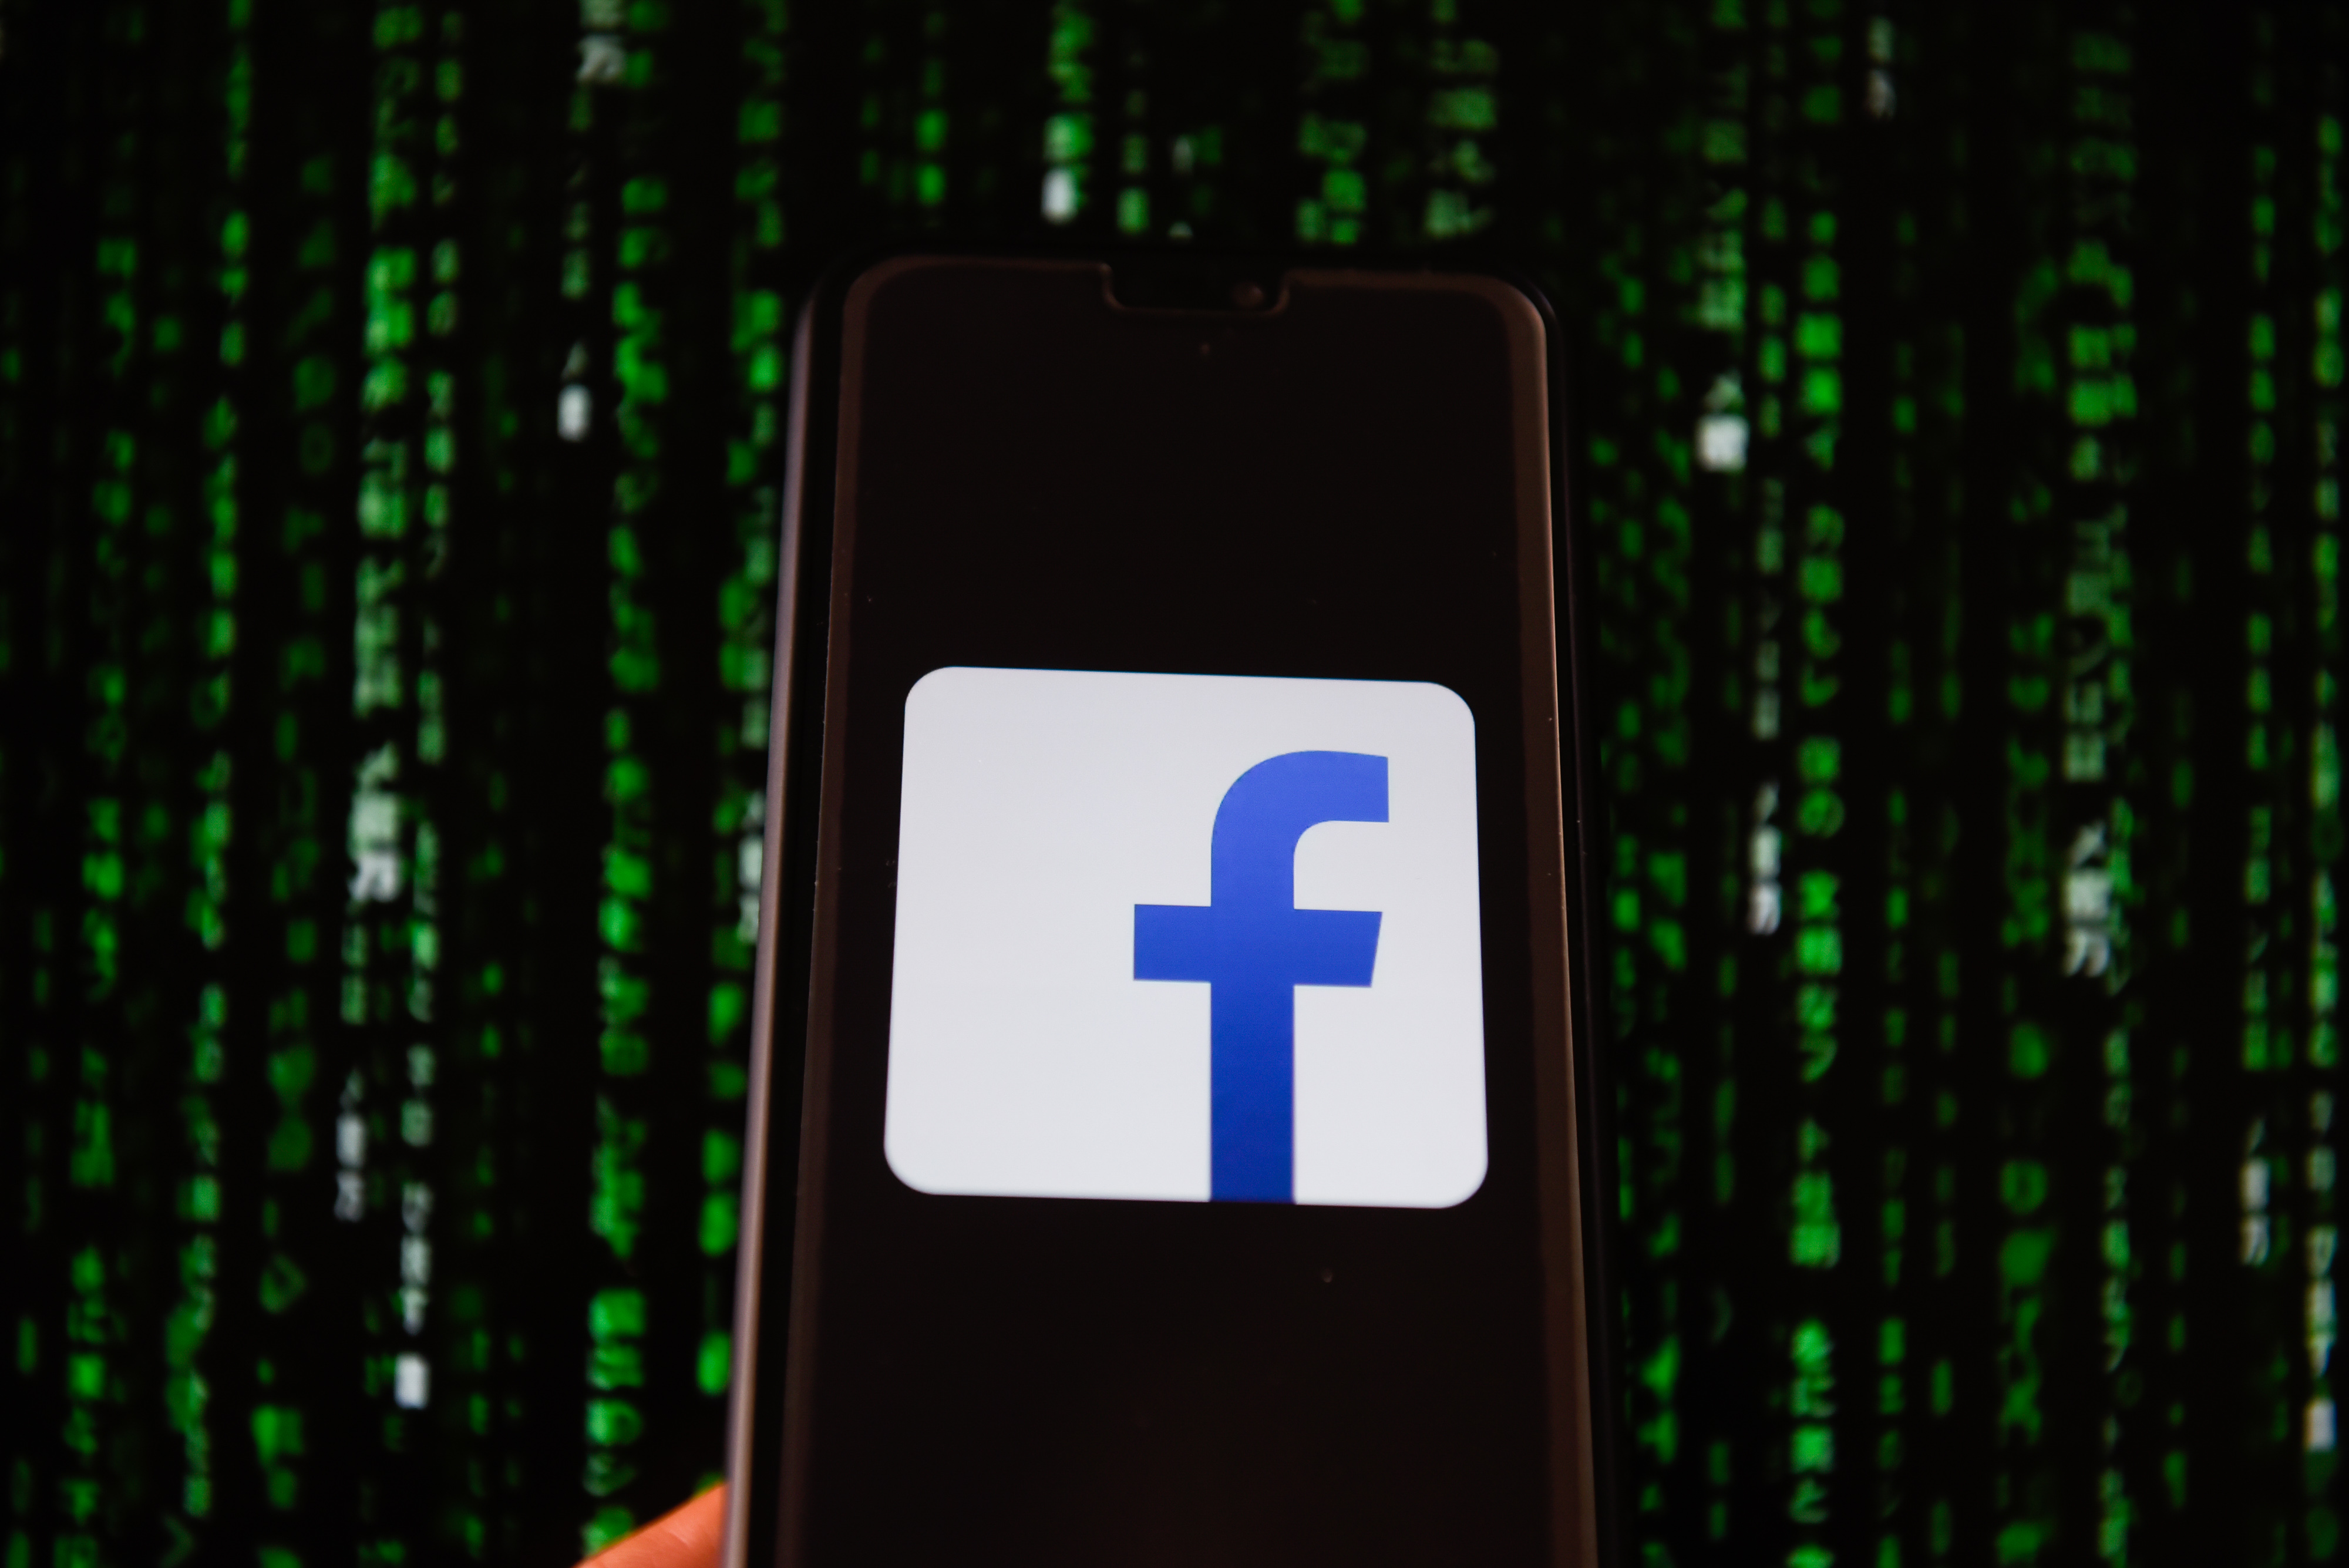 Facebook logo is seen on a mobile phone.